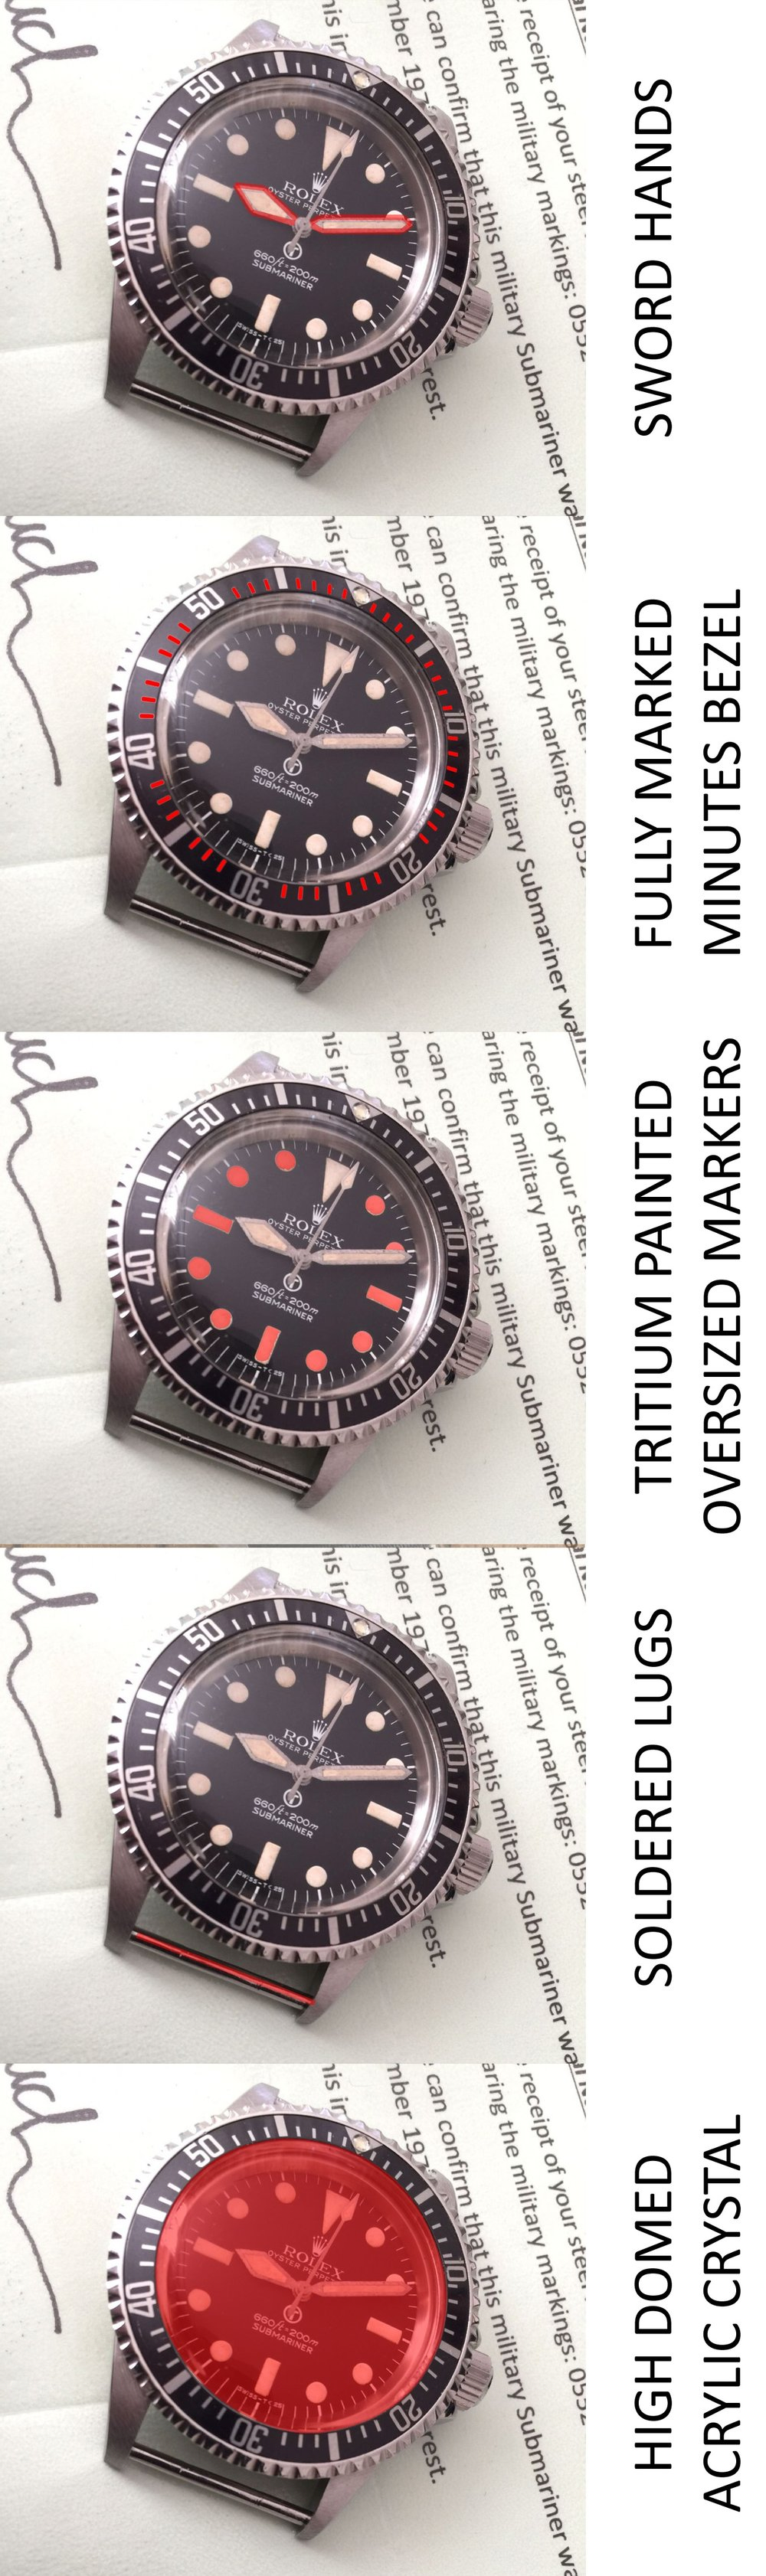 Watchucation 101 Anatomy Of The Rolex Military Submariner Milsub